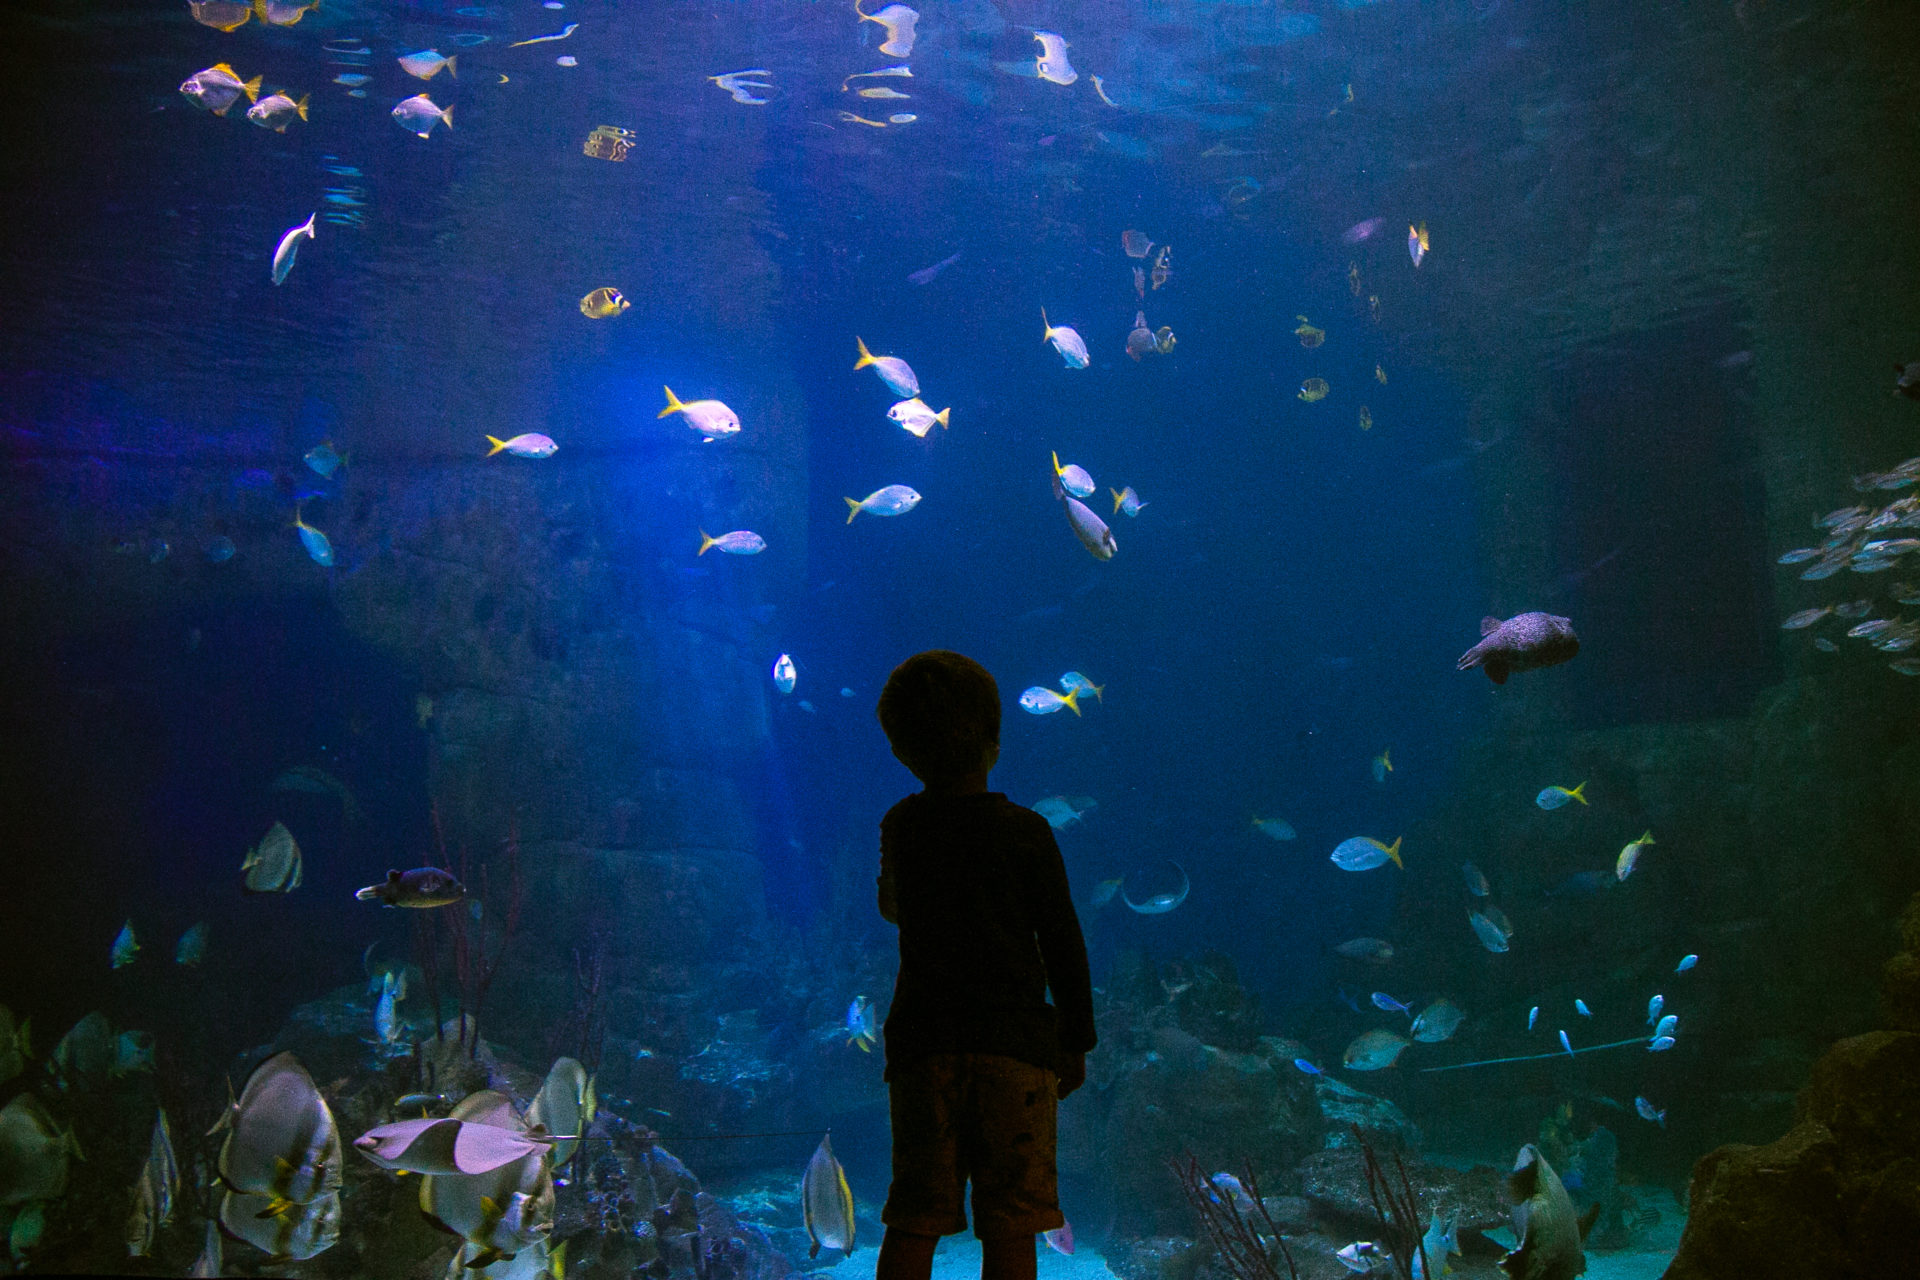 Young boy at the national marine aquarium